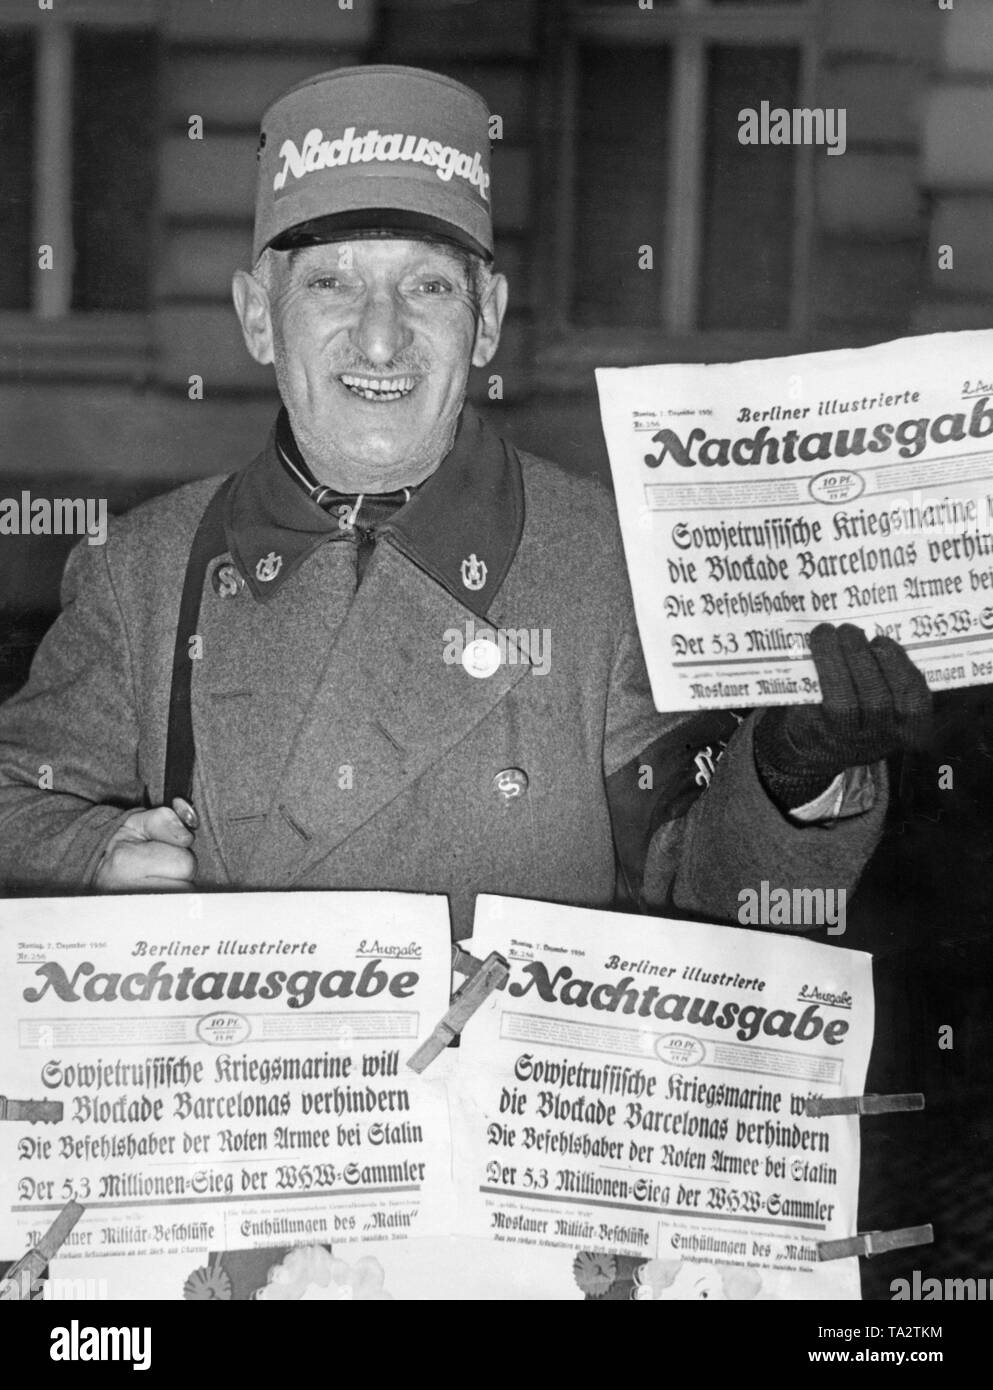 Photo of a newspaperman of the 'Illustrierte' with the late-night edition of the newspaper on December 7, 1936 in Berlin. The headline about the Spanish Civil War: 'Soviet Kriegsmarine (military navy) wants to prevent the blockade of Barcelona'. The Republican newspaper had been supported by the Soviet Union since the summer of 1936 with a supply of weapons and voluntary fighters. The nationalist troops also received international support. - Stock Image